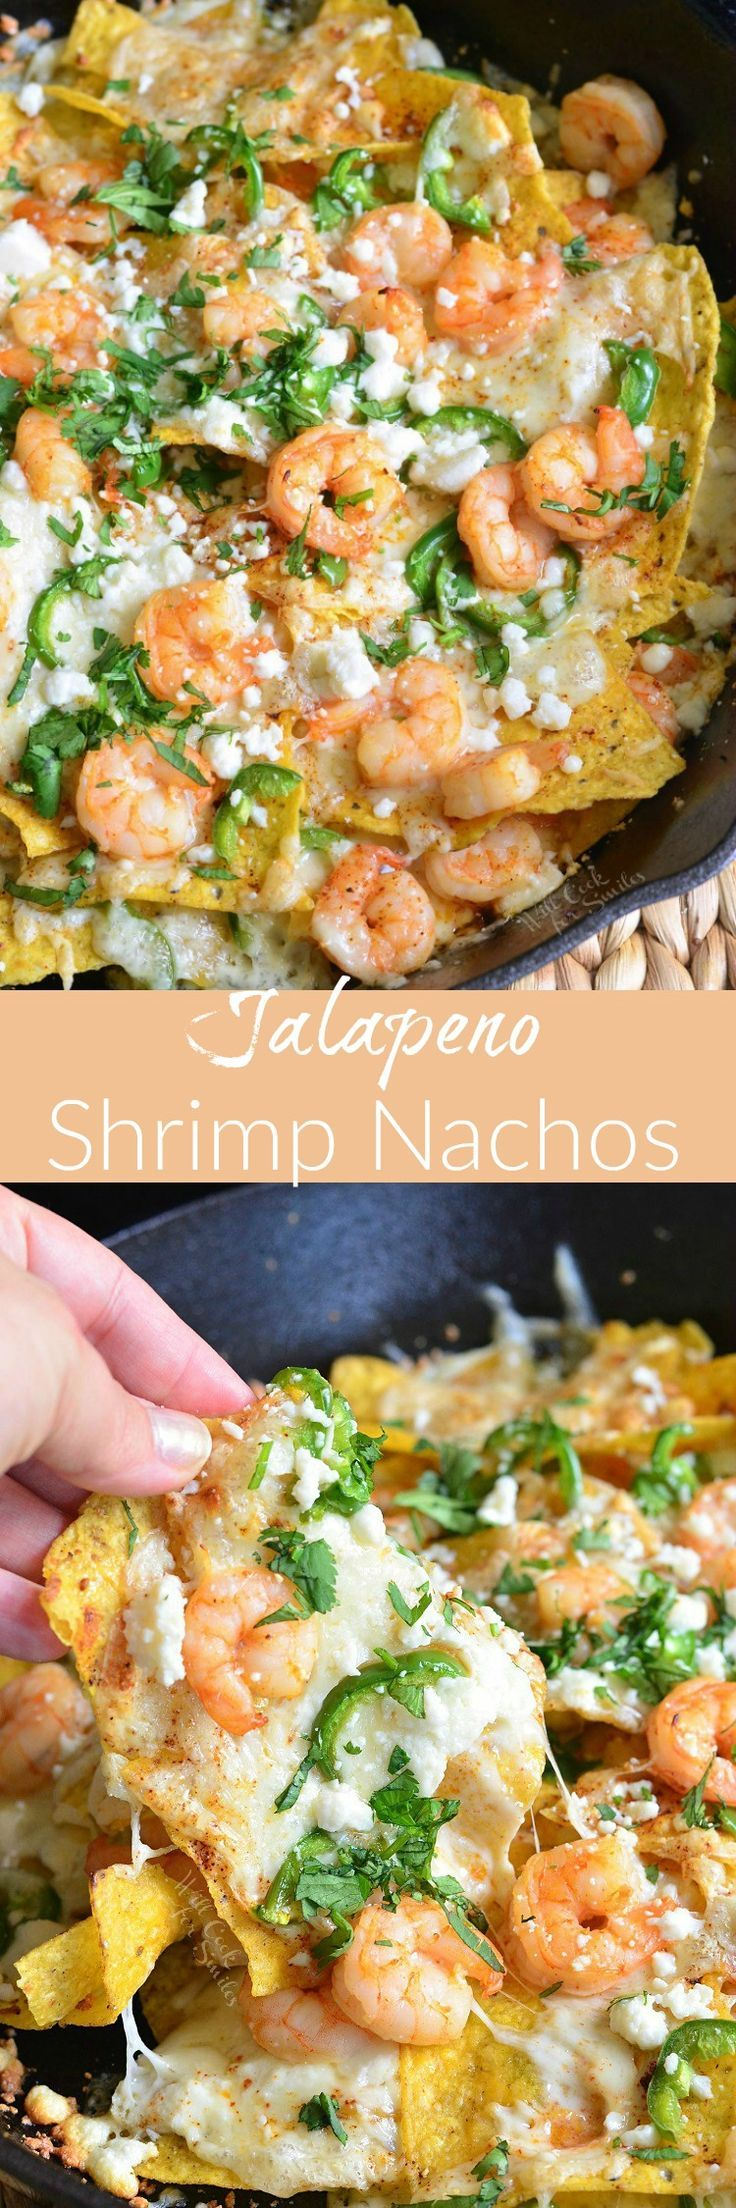 Jalapeno Shrimp Nachos. These cheesy, spicy, delicious shrimp nachos will make a great snack for everyone. These nachos are loaded with two types of cheese, fresh jalapeno peppers, and juicy shrimp.